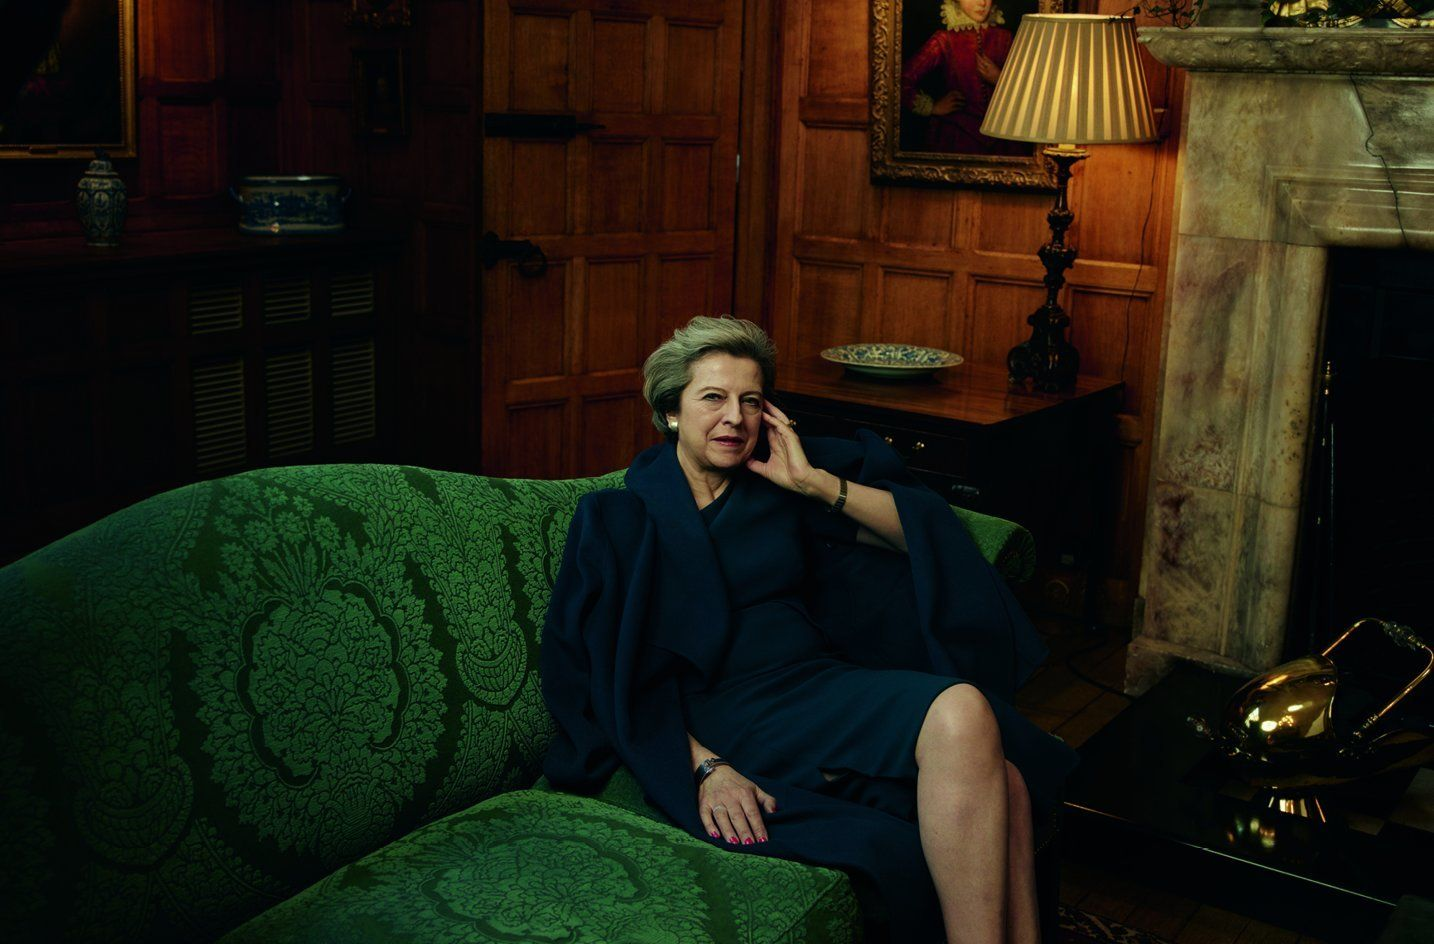 The Prime Minister in a photograph taken by Annie Leibovitz for Vogue US